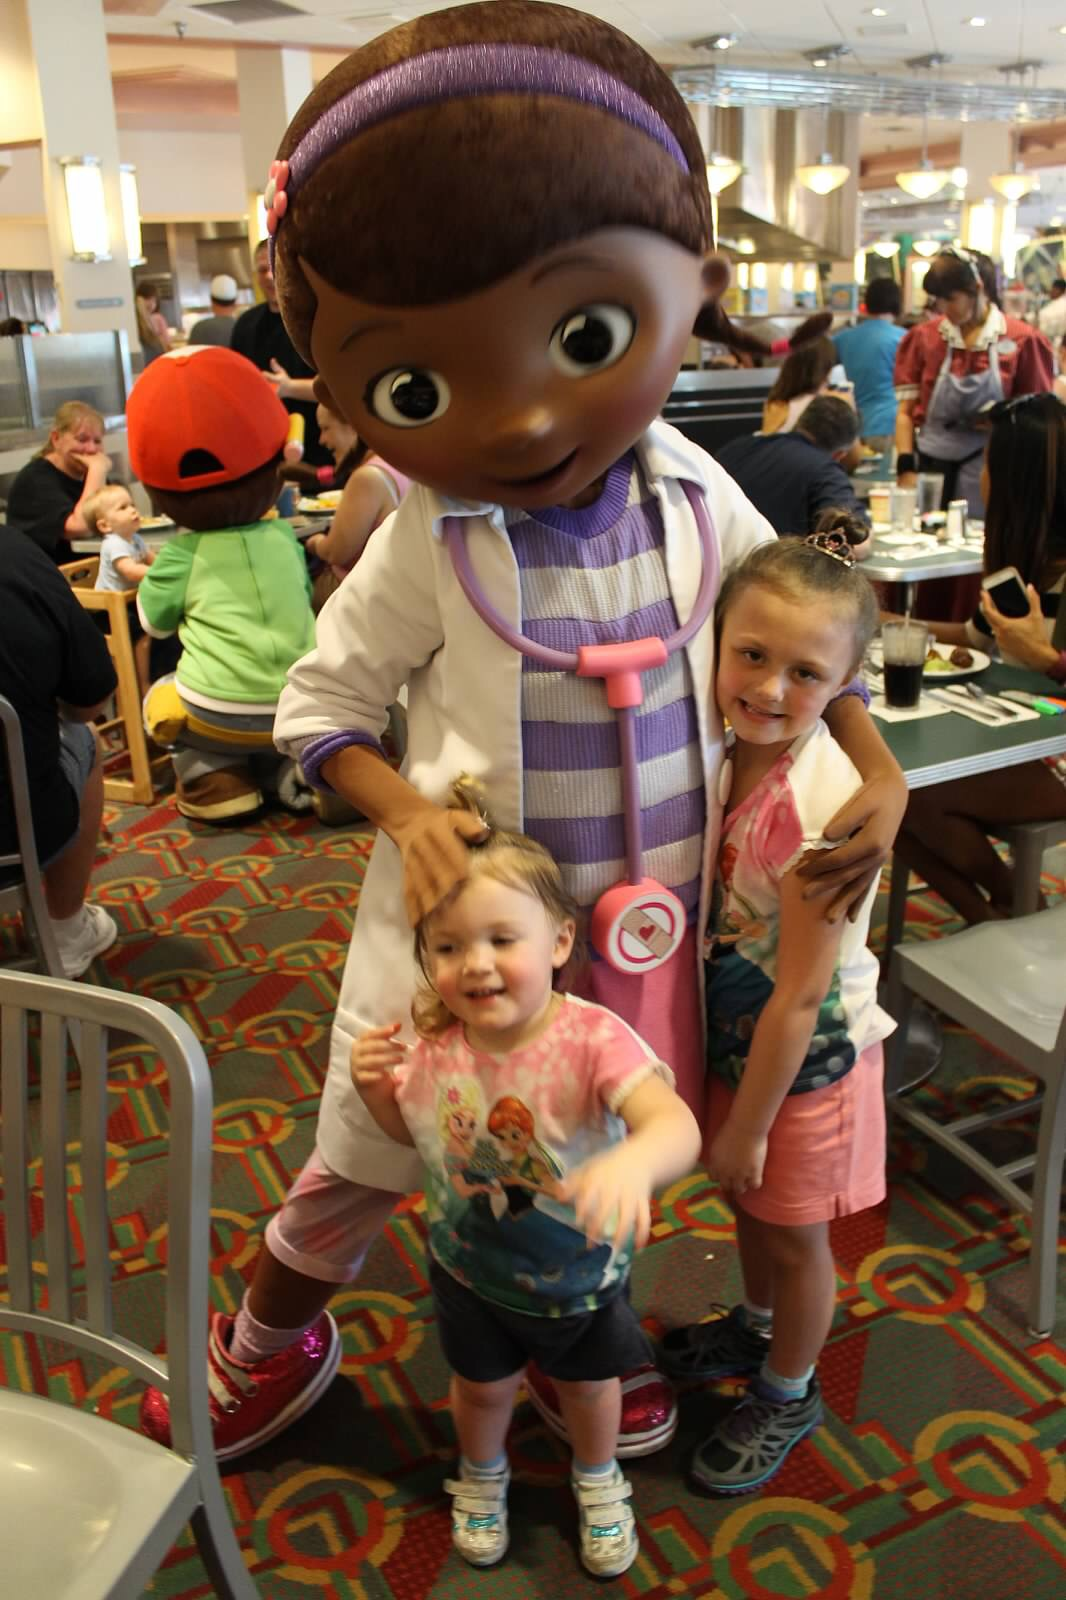 Meeting your favorite characters at disneys hollywood studios dance and sing along with doc mcstuffins sofia the first jake and handy manny this play and dine experience will have your little one doing the hot dog kristyandbryce Images